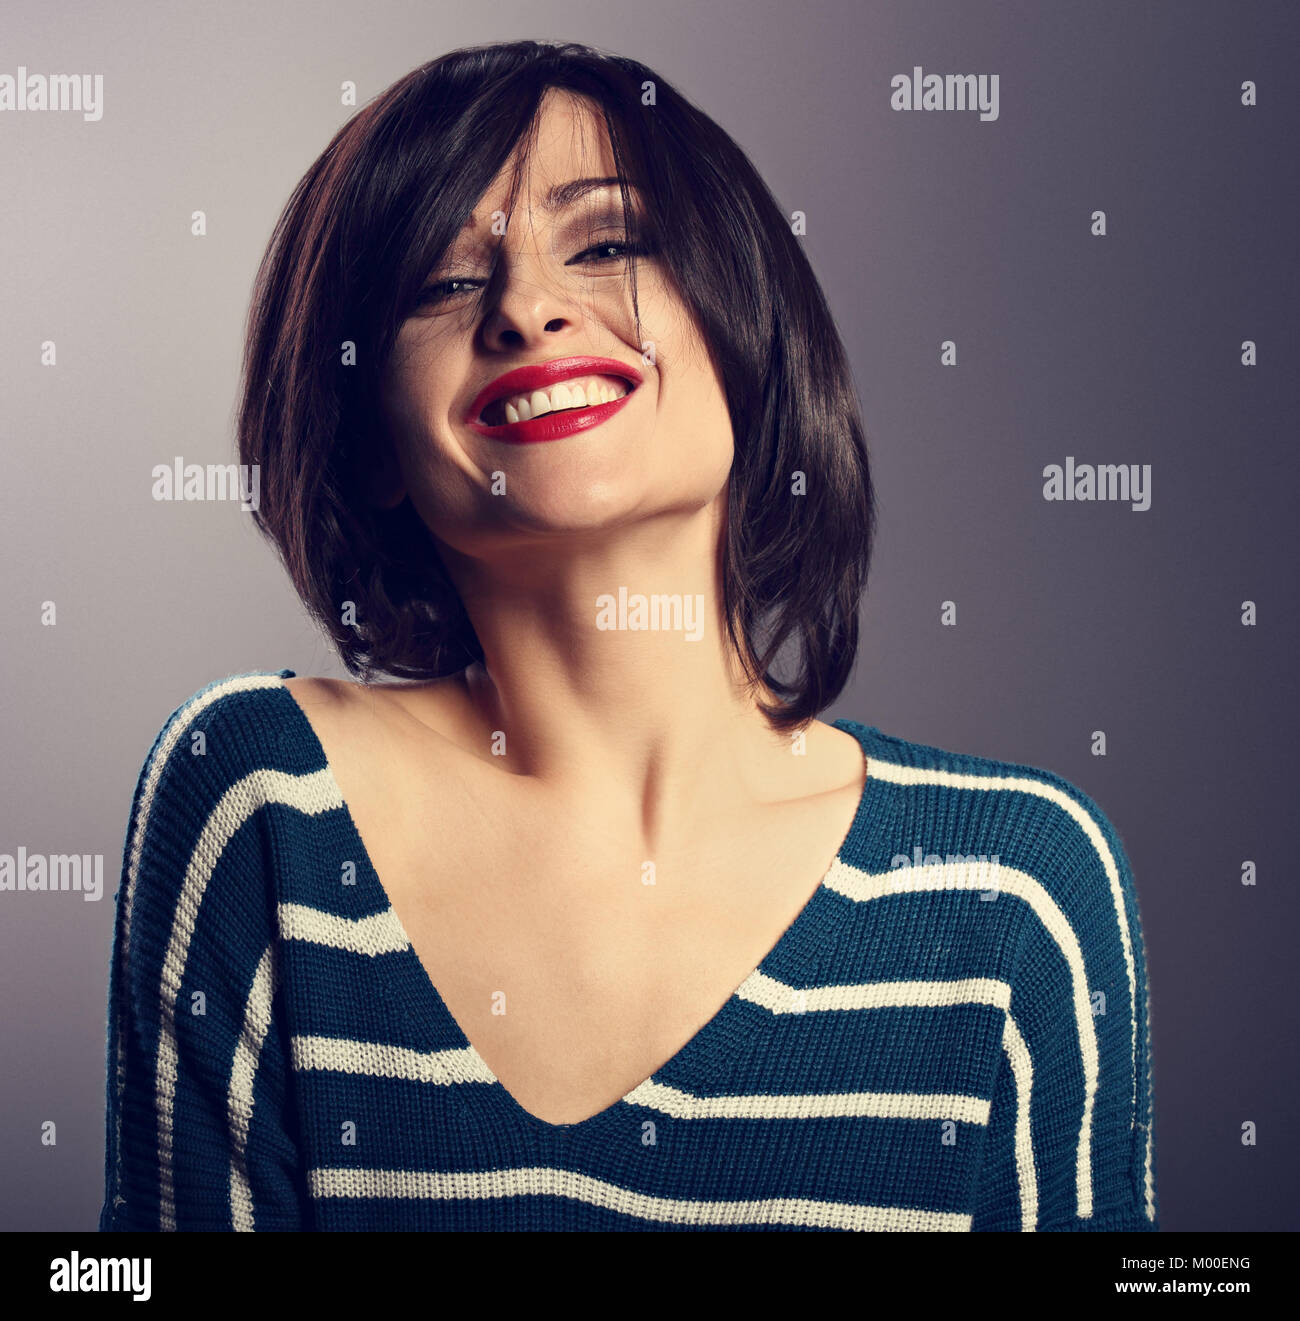 Happy loudly laughing with wide smile young woman with short hair in fashion sweater. portrait on grey background. - Stock Image